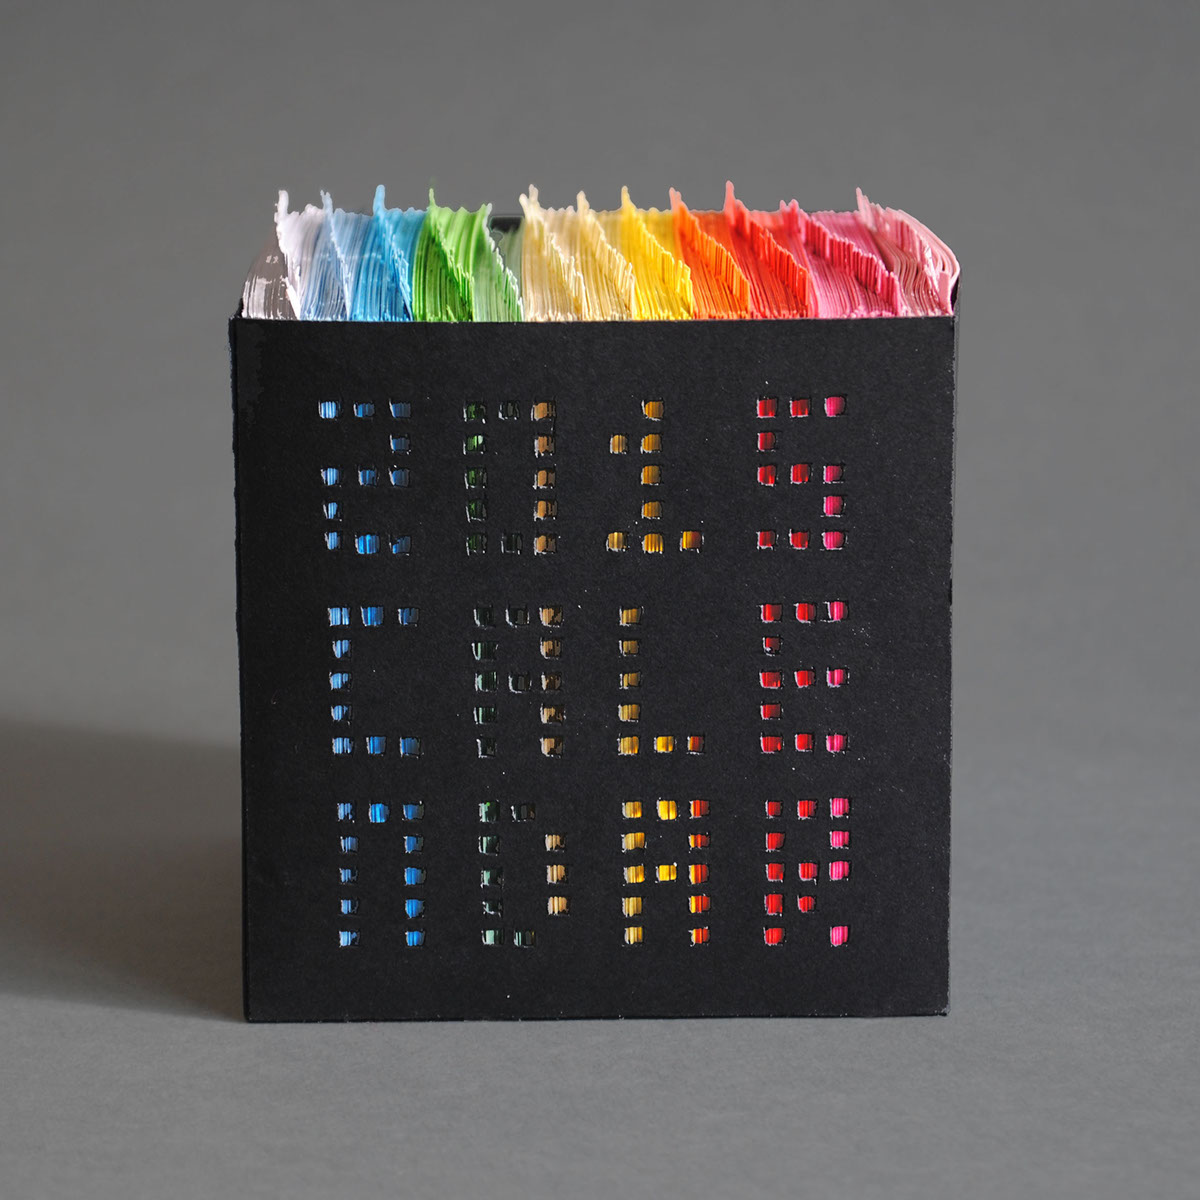 Calendar Square Ideas : Creative print calendar ideas drupa